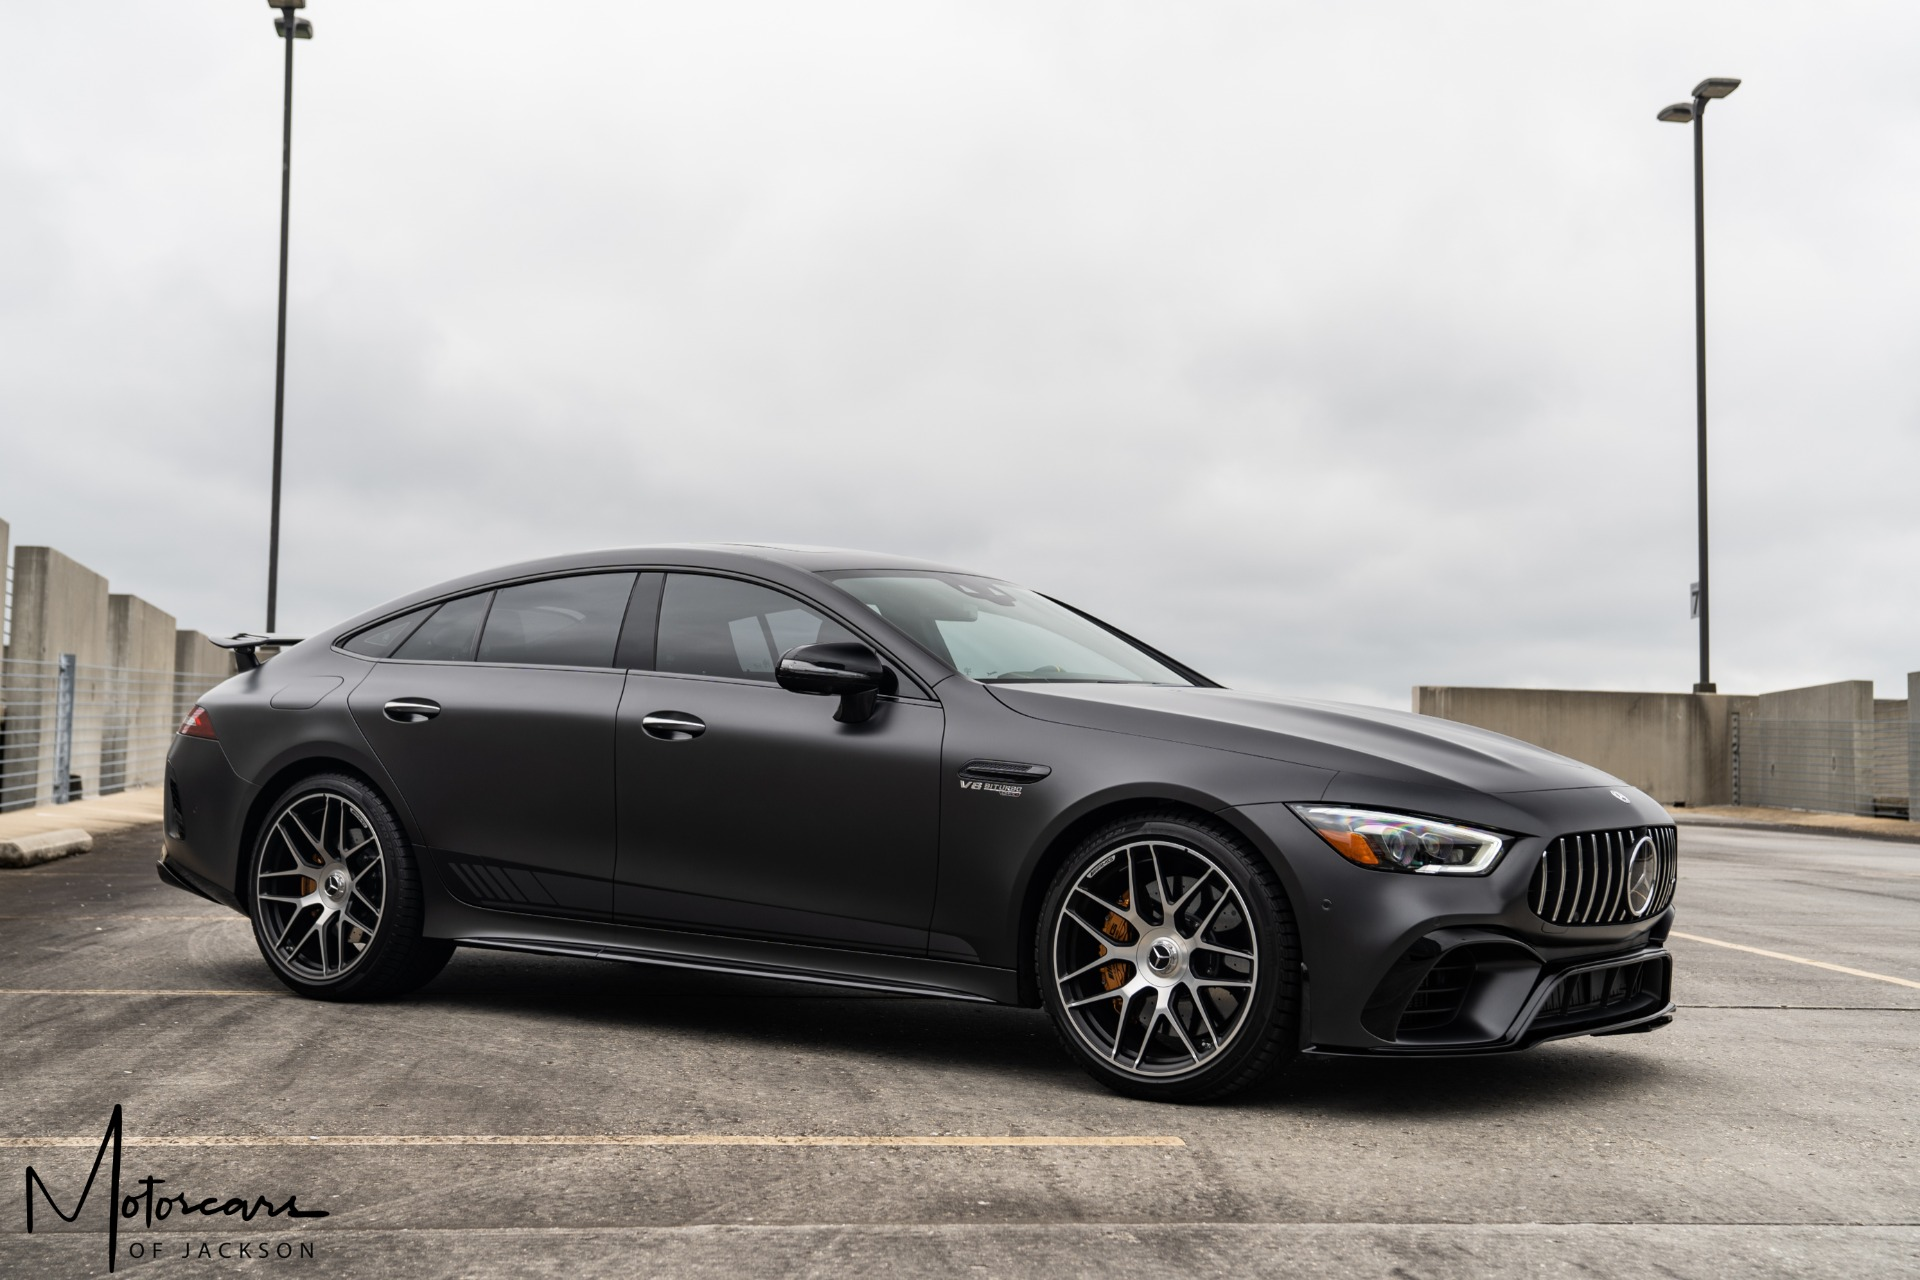 2019 Mercedes-Benz AMG GT AMG GT 63 S Edition 1 Stock # KA001616 for sale near Jackson, MS | MS ...